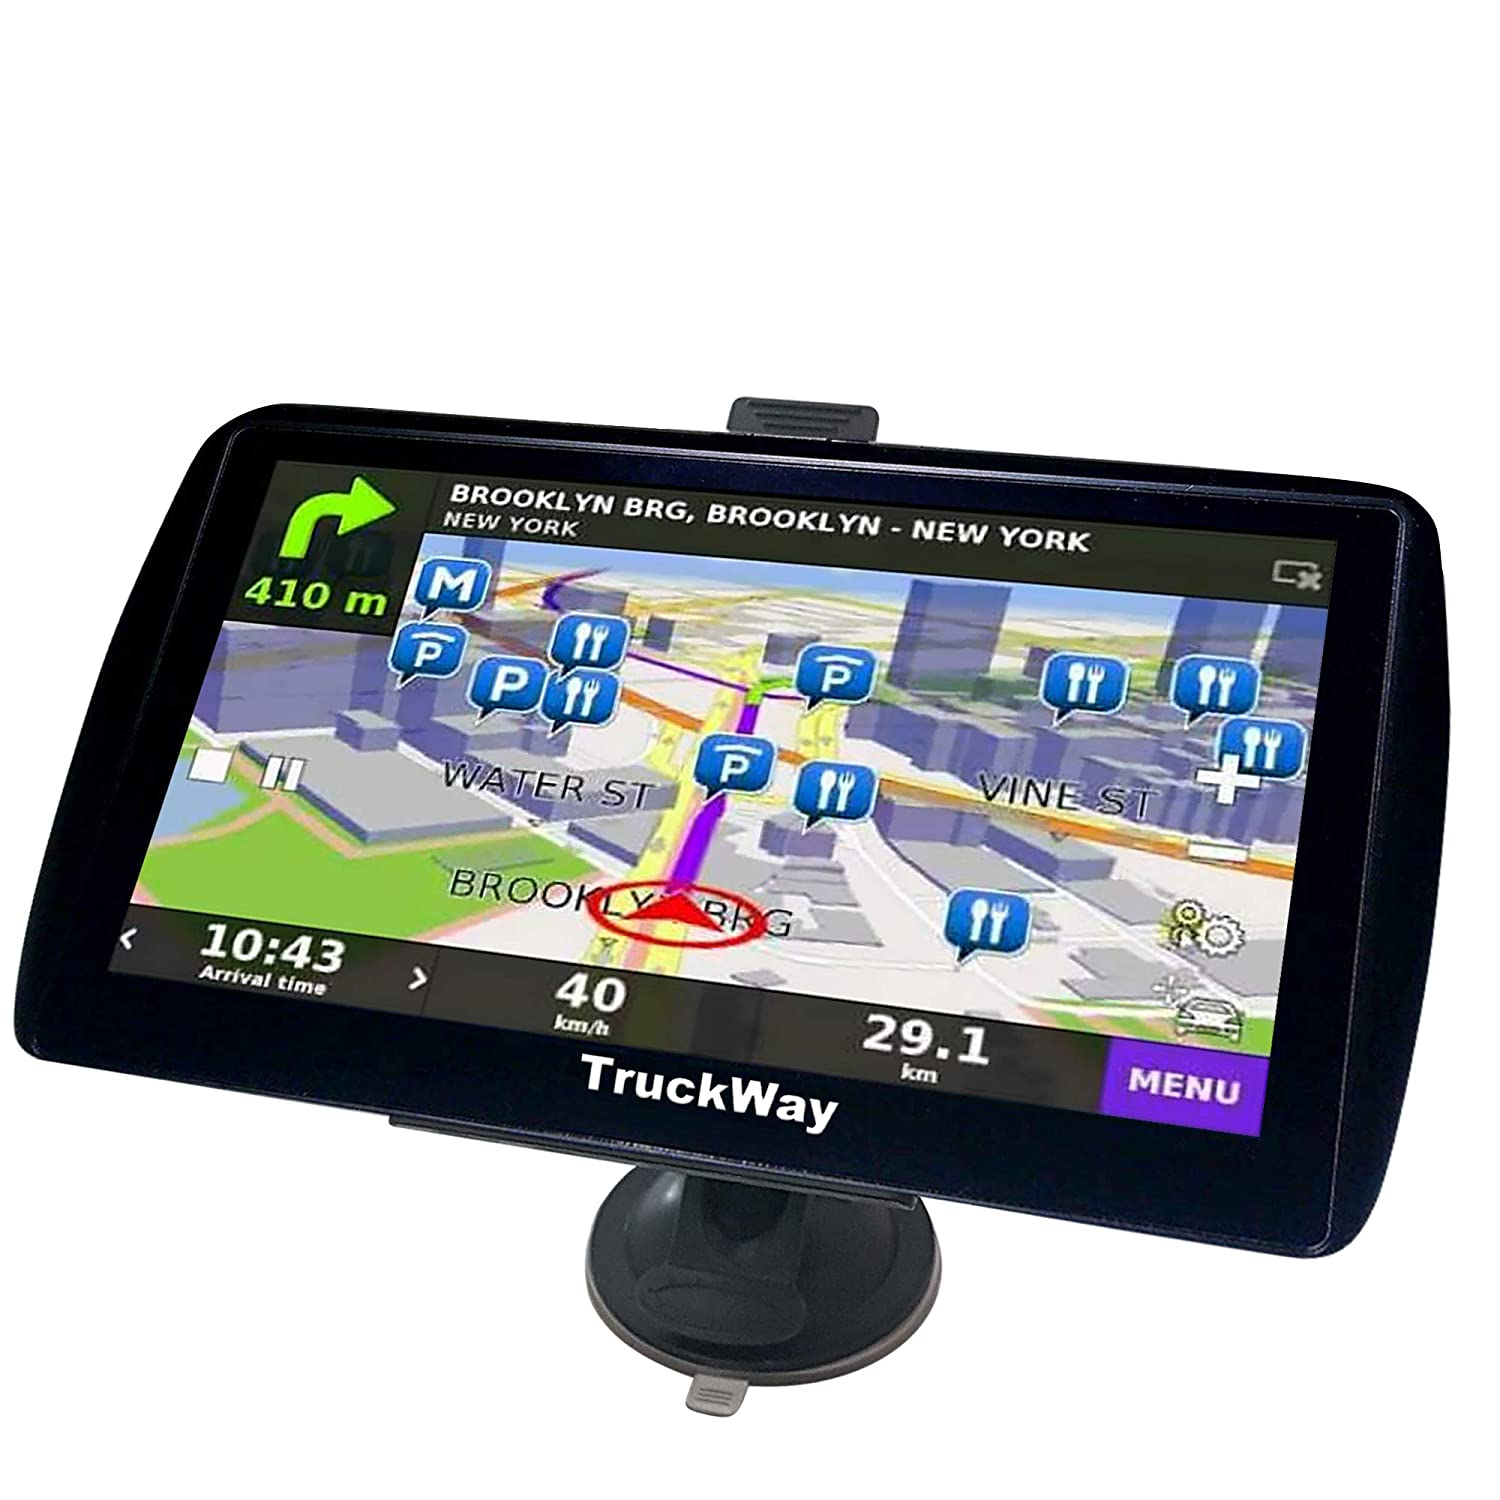 TruckWay GPS - Pro Series Black Edition - Truck GPS 7' inch for Truck Navigation Lifetime North America Maps (USA + Canada) 3D & 2D Maps, Touch Screen, Turn by Turn